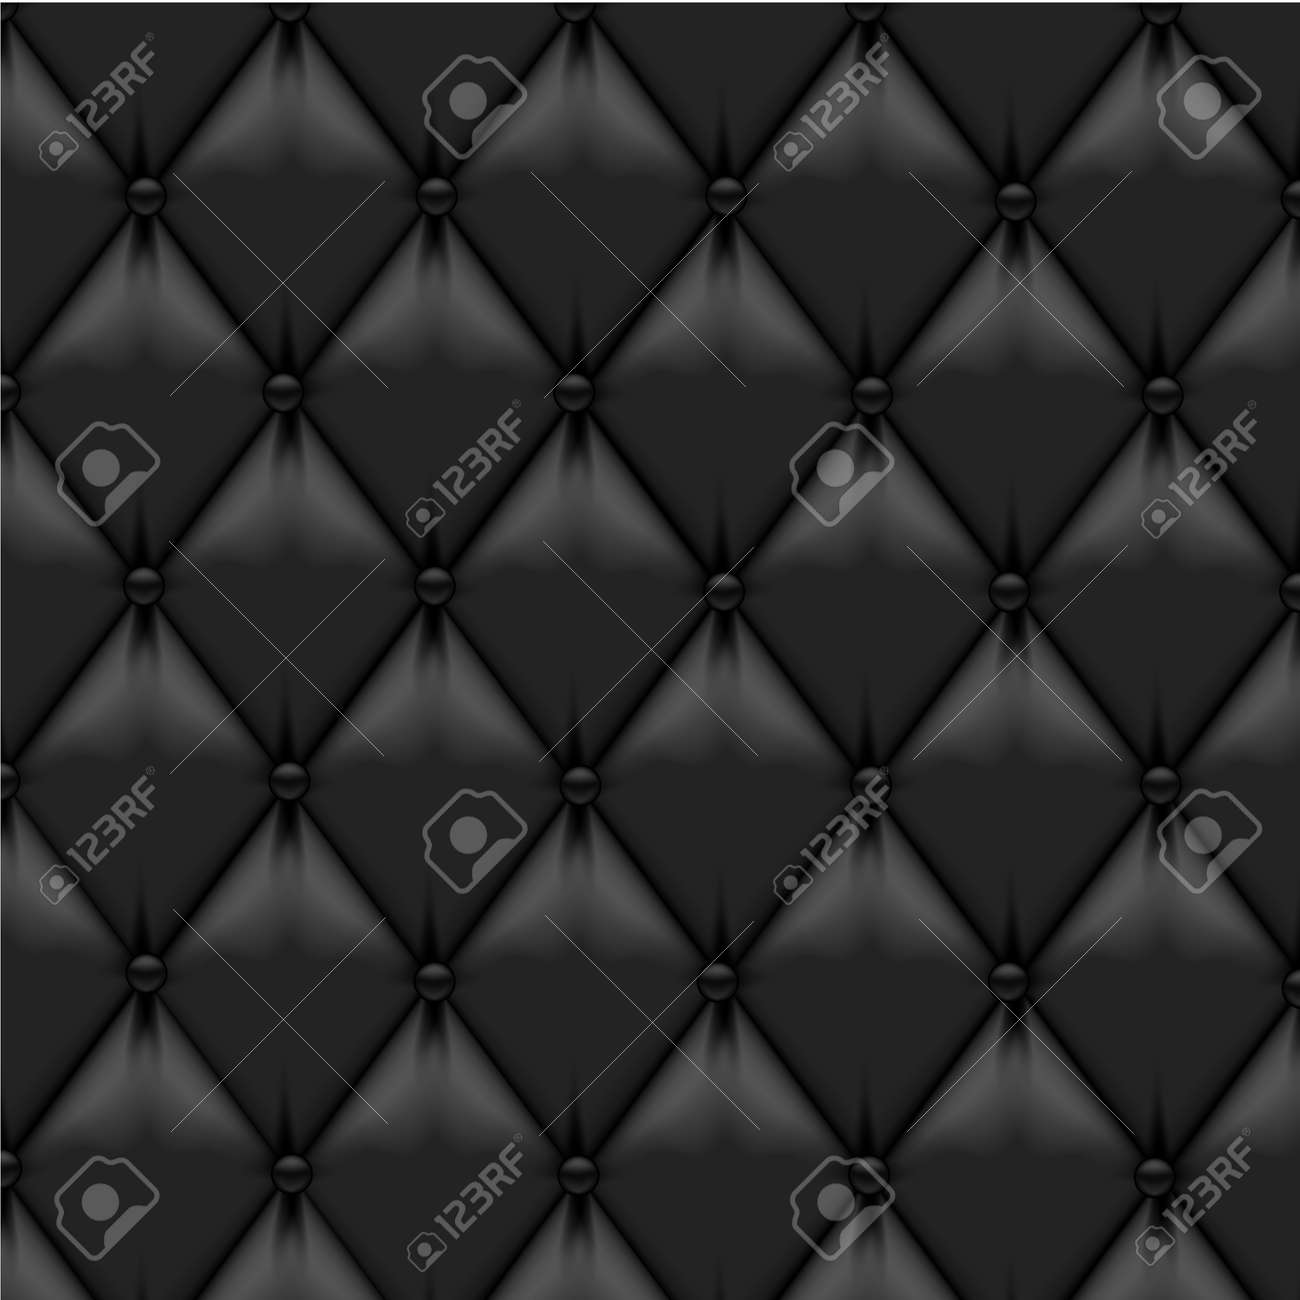 Leather Upholstery Background Stock Vector - 17604477